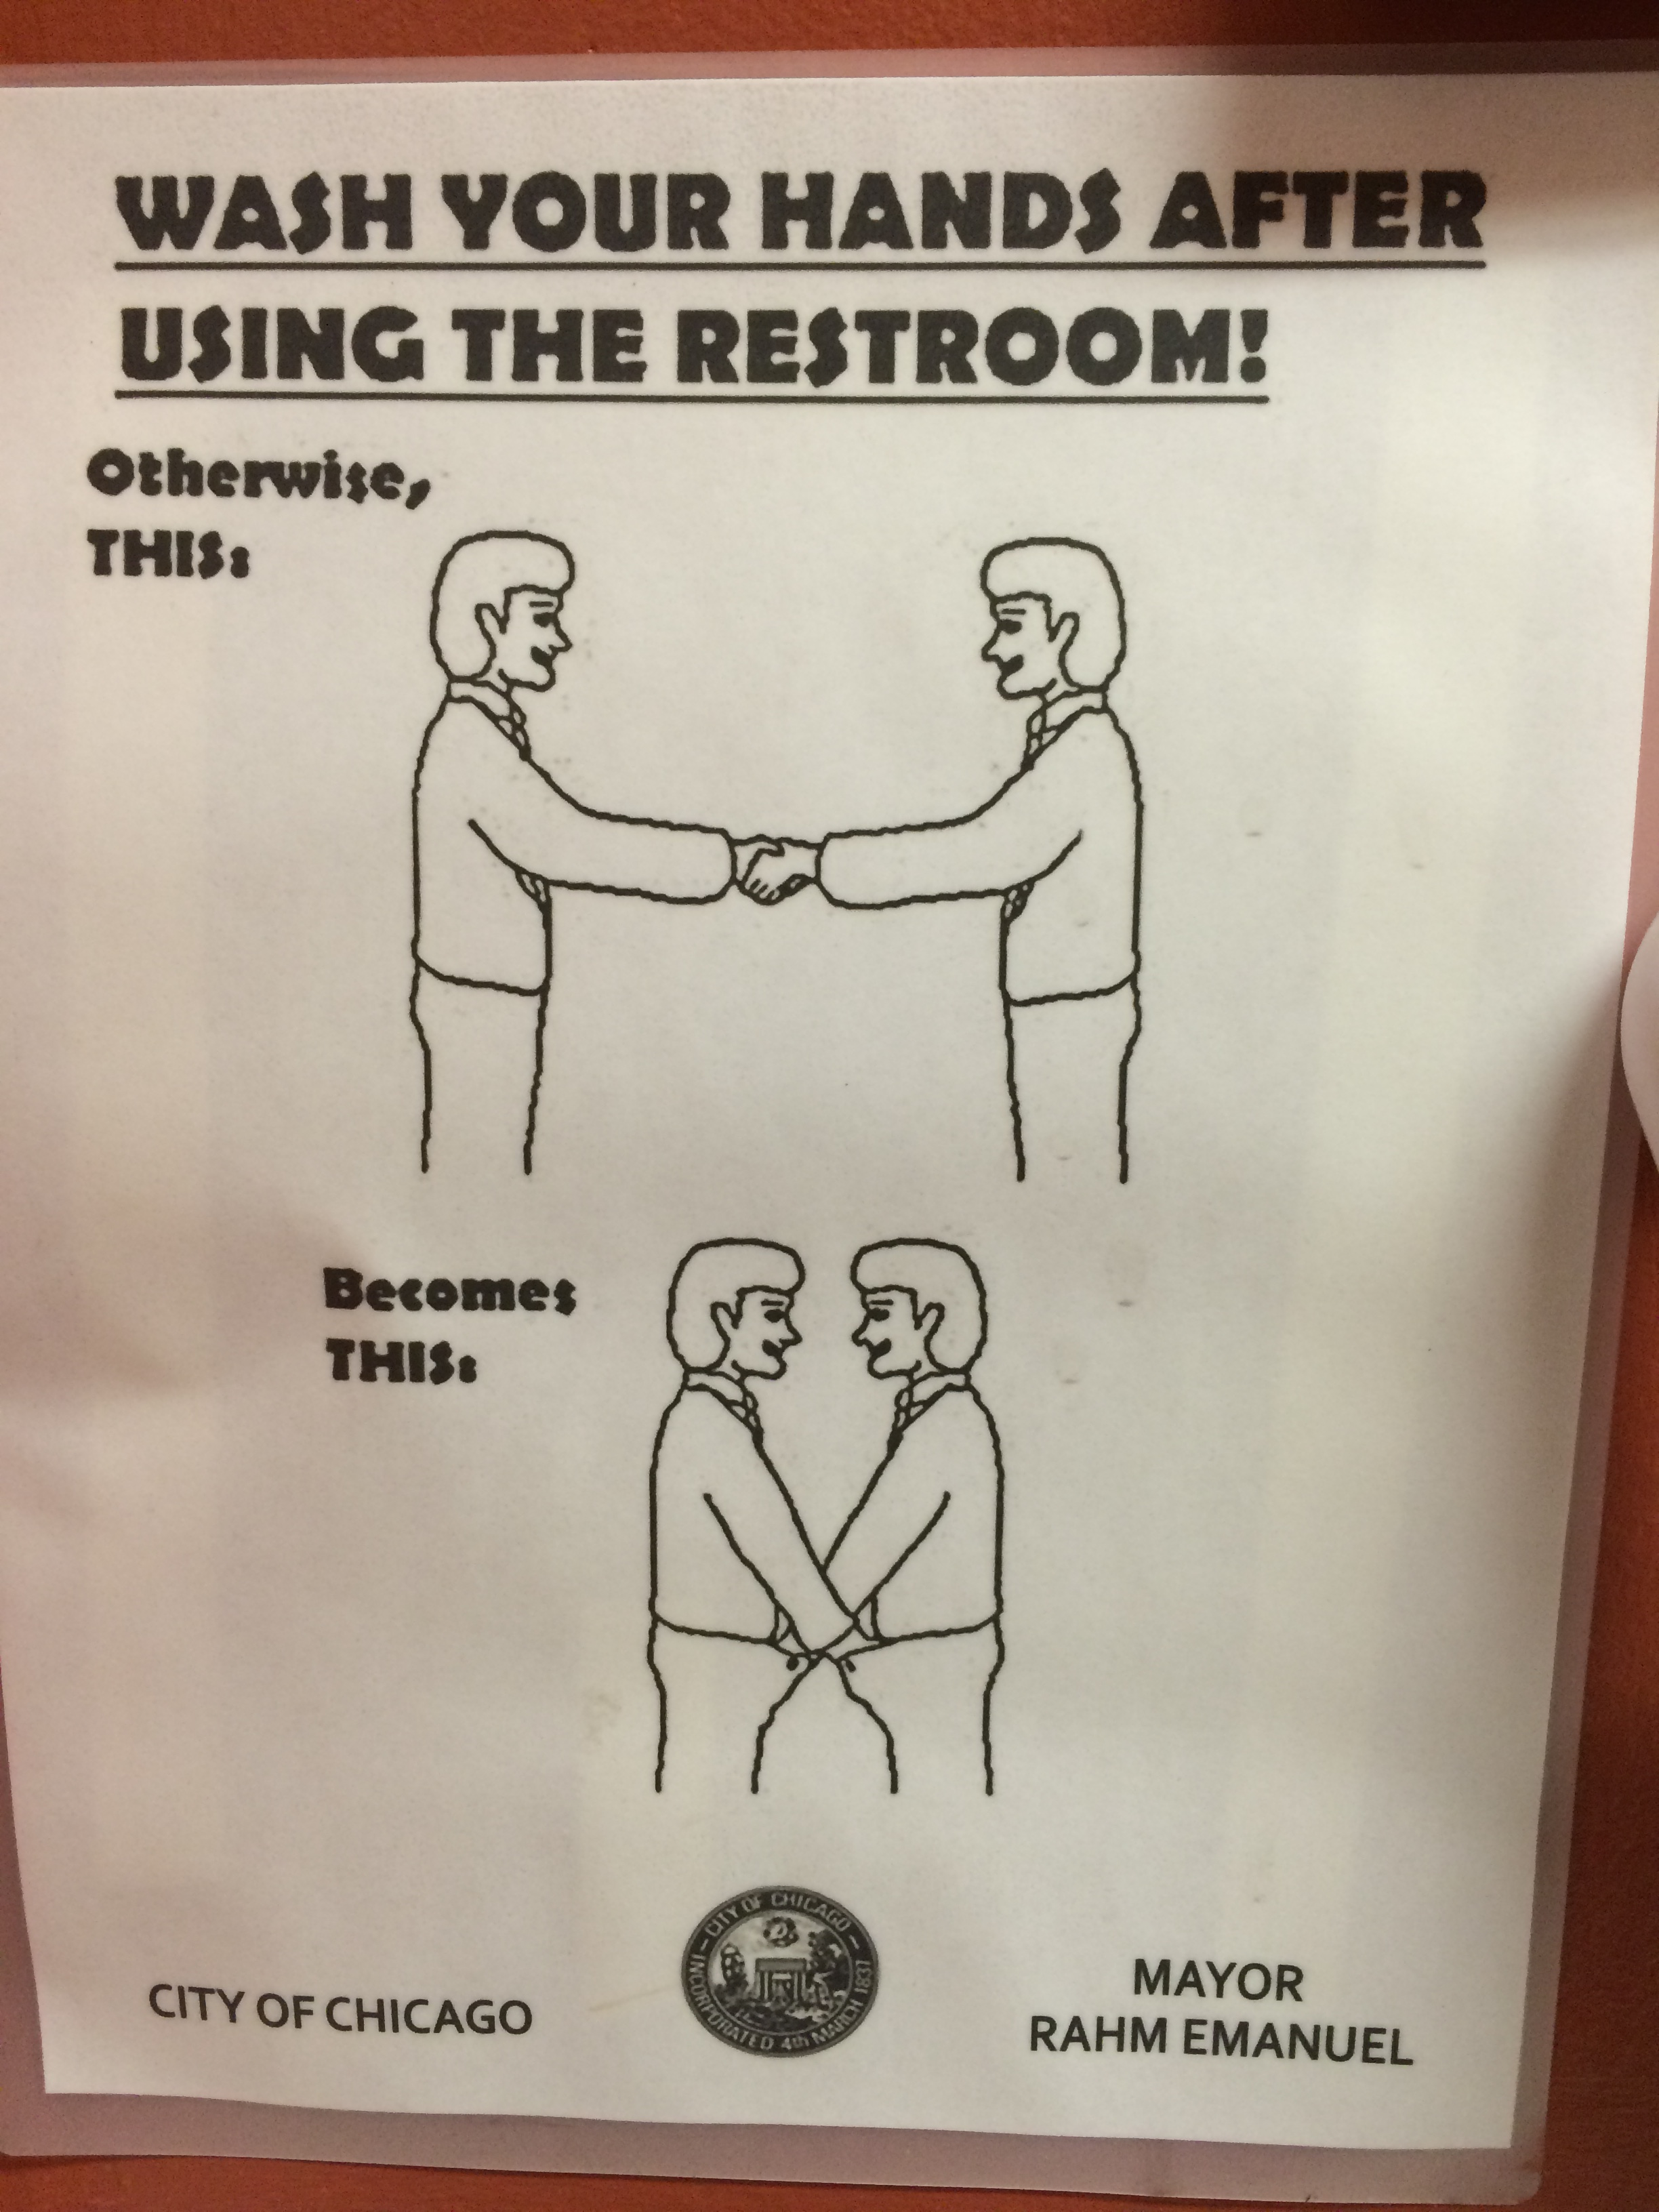 Wash your hands after using the restroom!